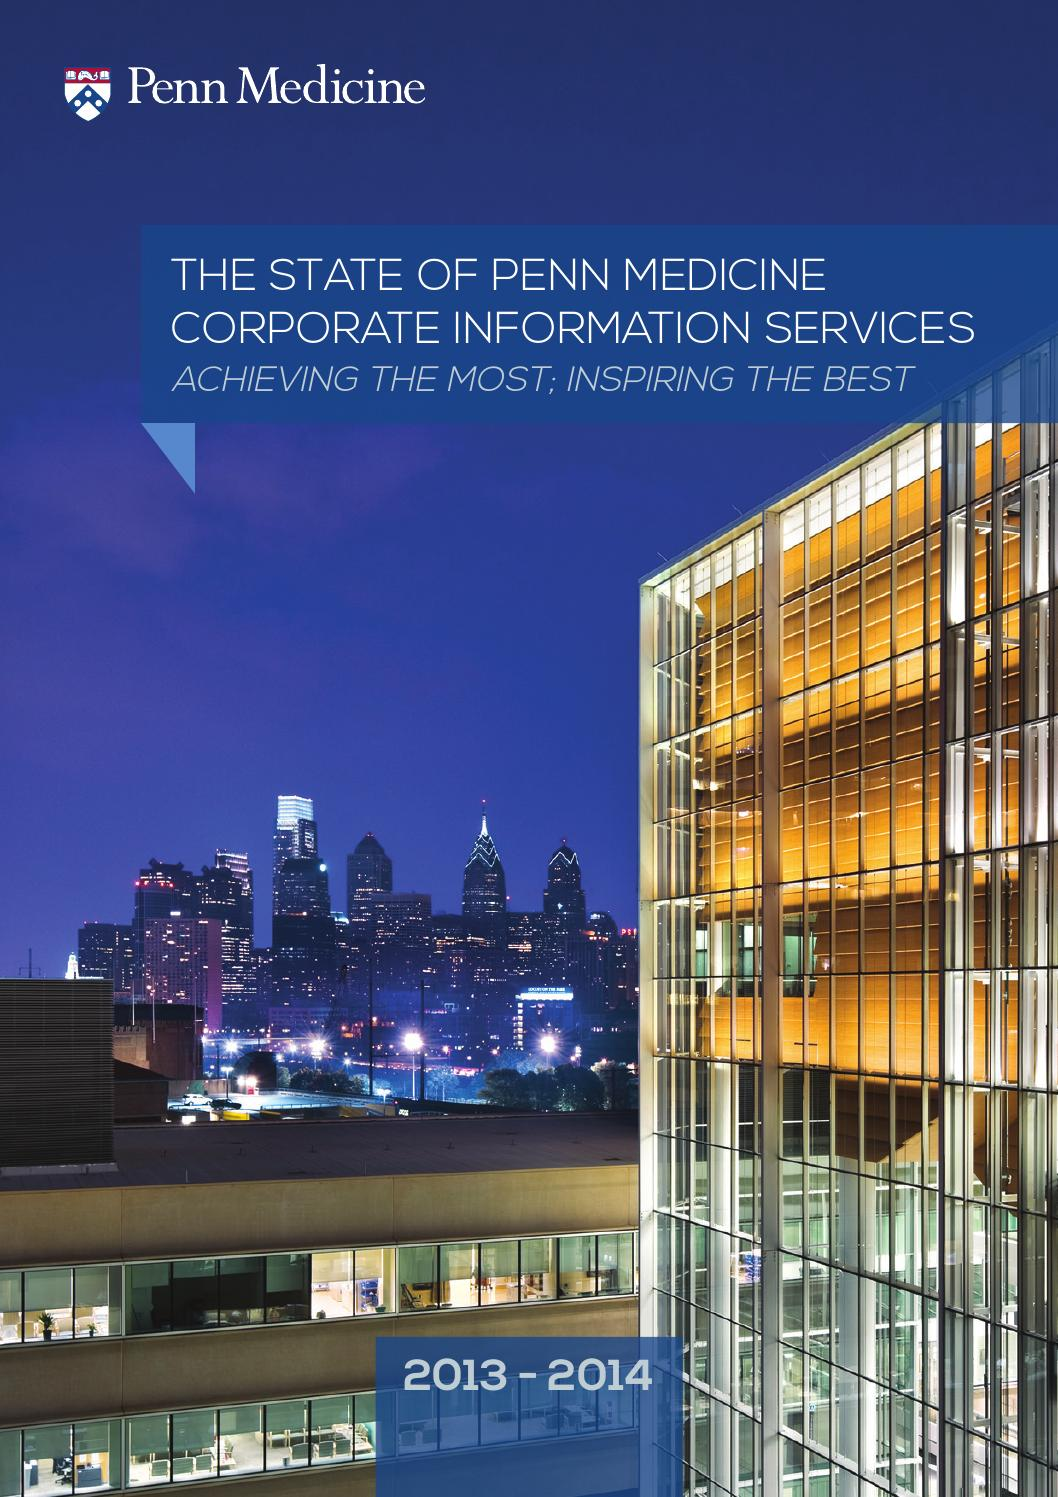 The State of Penn Medicine Information Services by Penn